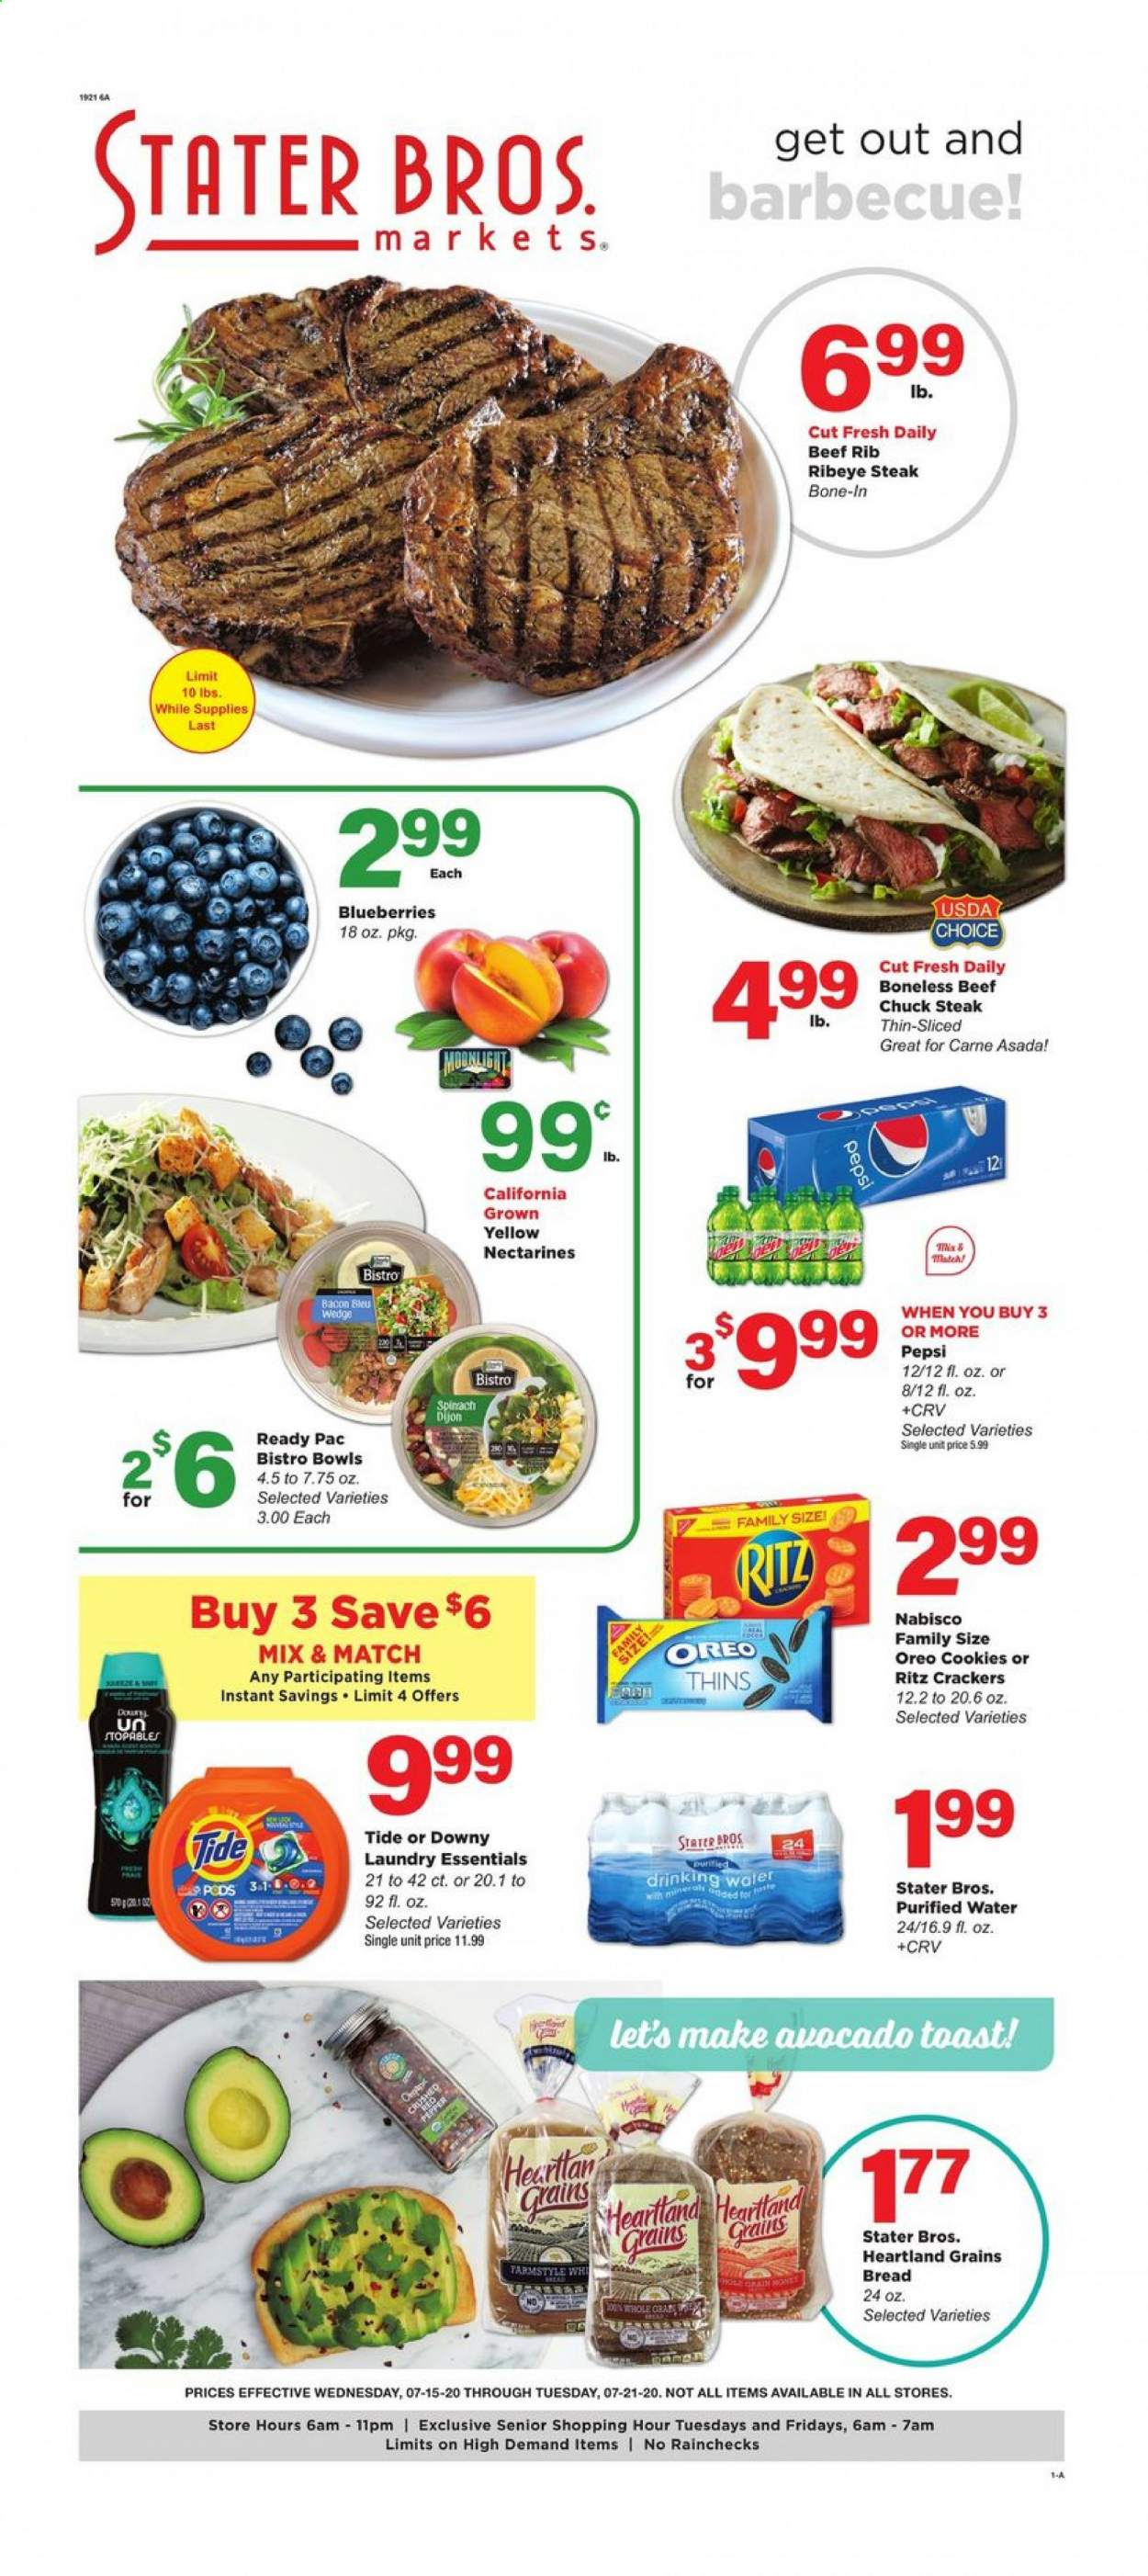 Stater Bros. Flyer - 07.15.2020 - 07.21.2020 - Sales products - avocado, bacon, beef meat, blueberries, bowl, bread, cookies, crackers, downy, gra, nectarines, spinach, tide, pepsi, oreo, steak, ritz, purified water. Page 1.